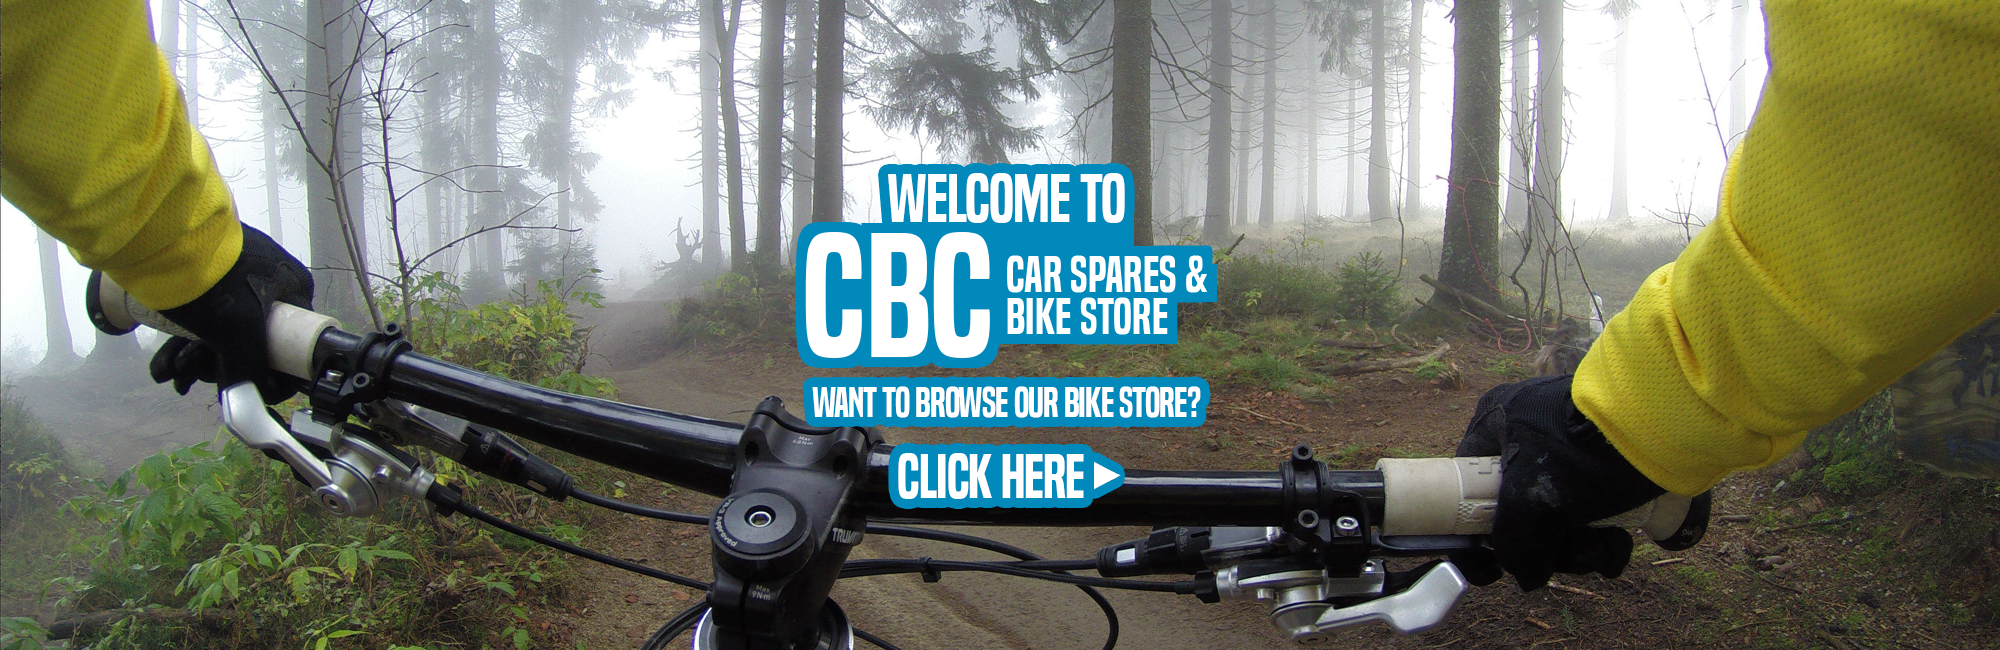 Bike Store and Welcome Banner